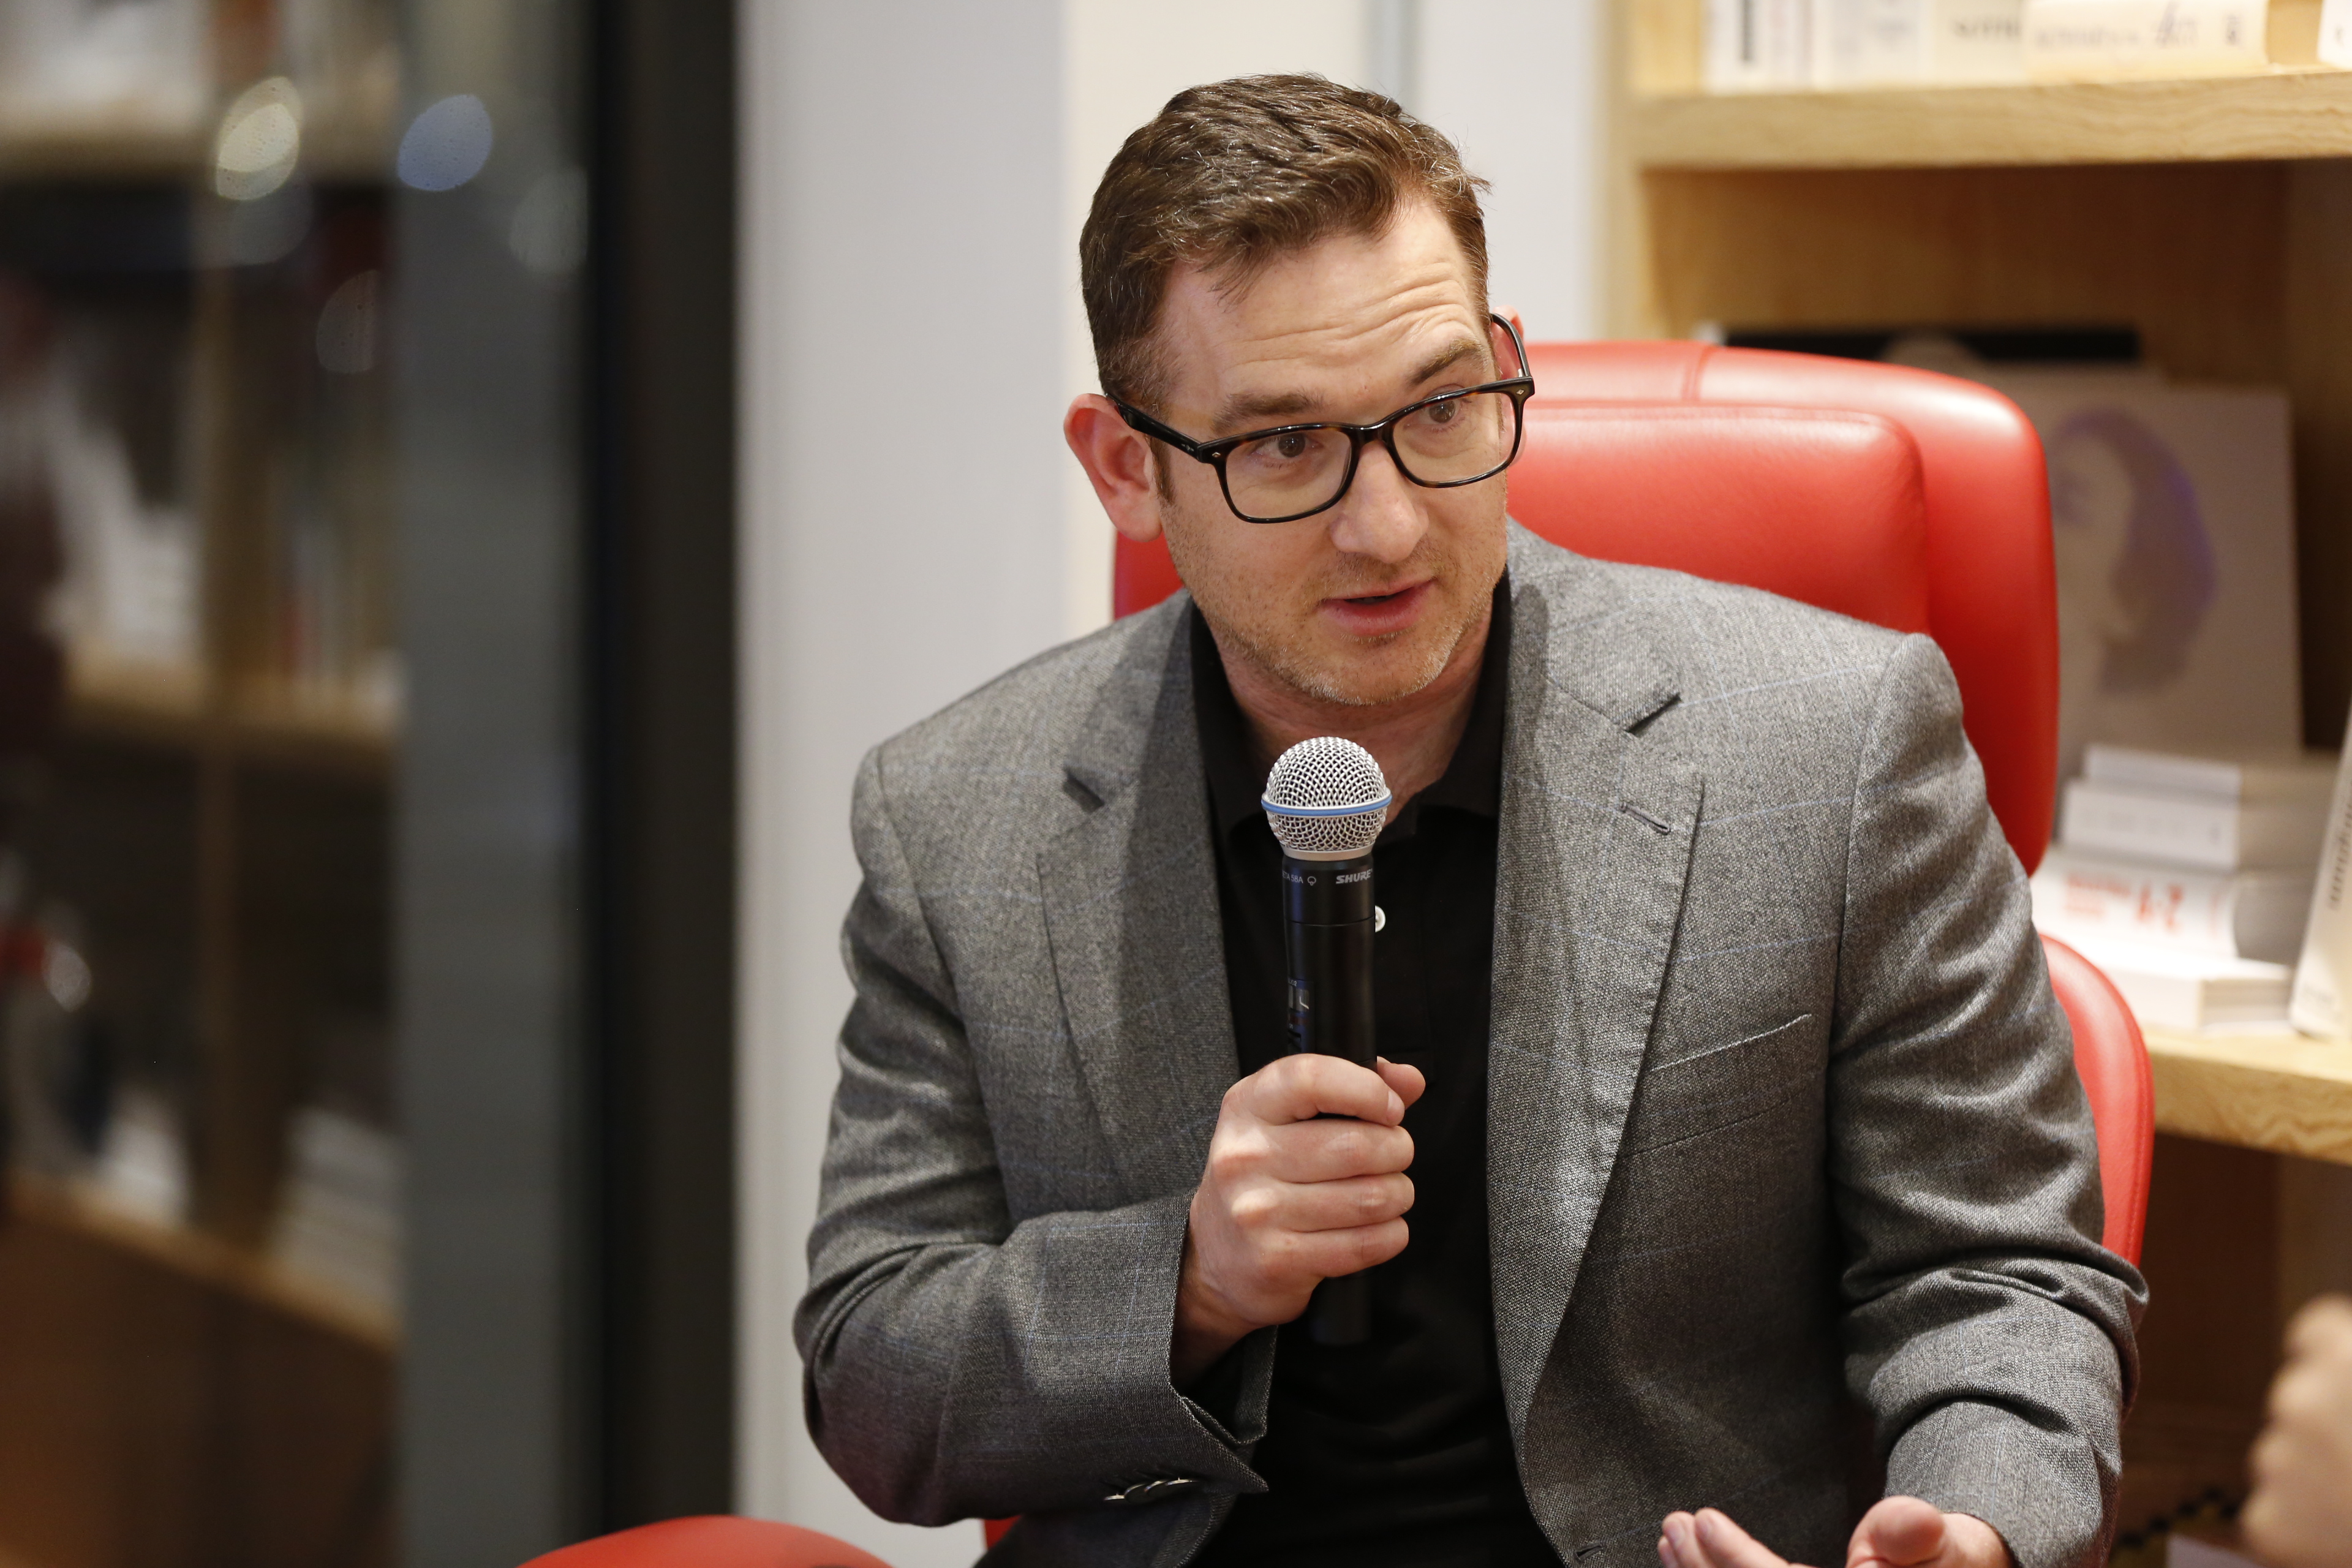 We should opt into data tracking, not out of it, says DuckDuckGo CEO Gabe Weinberg